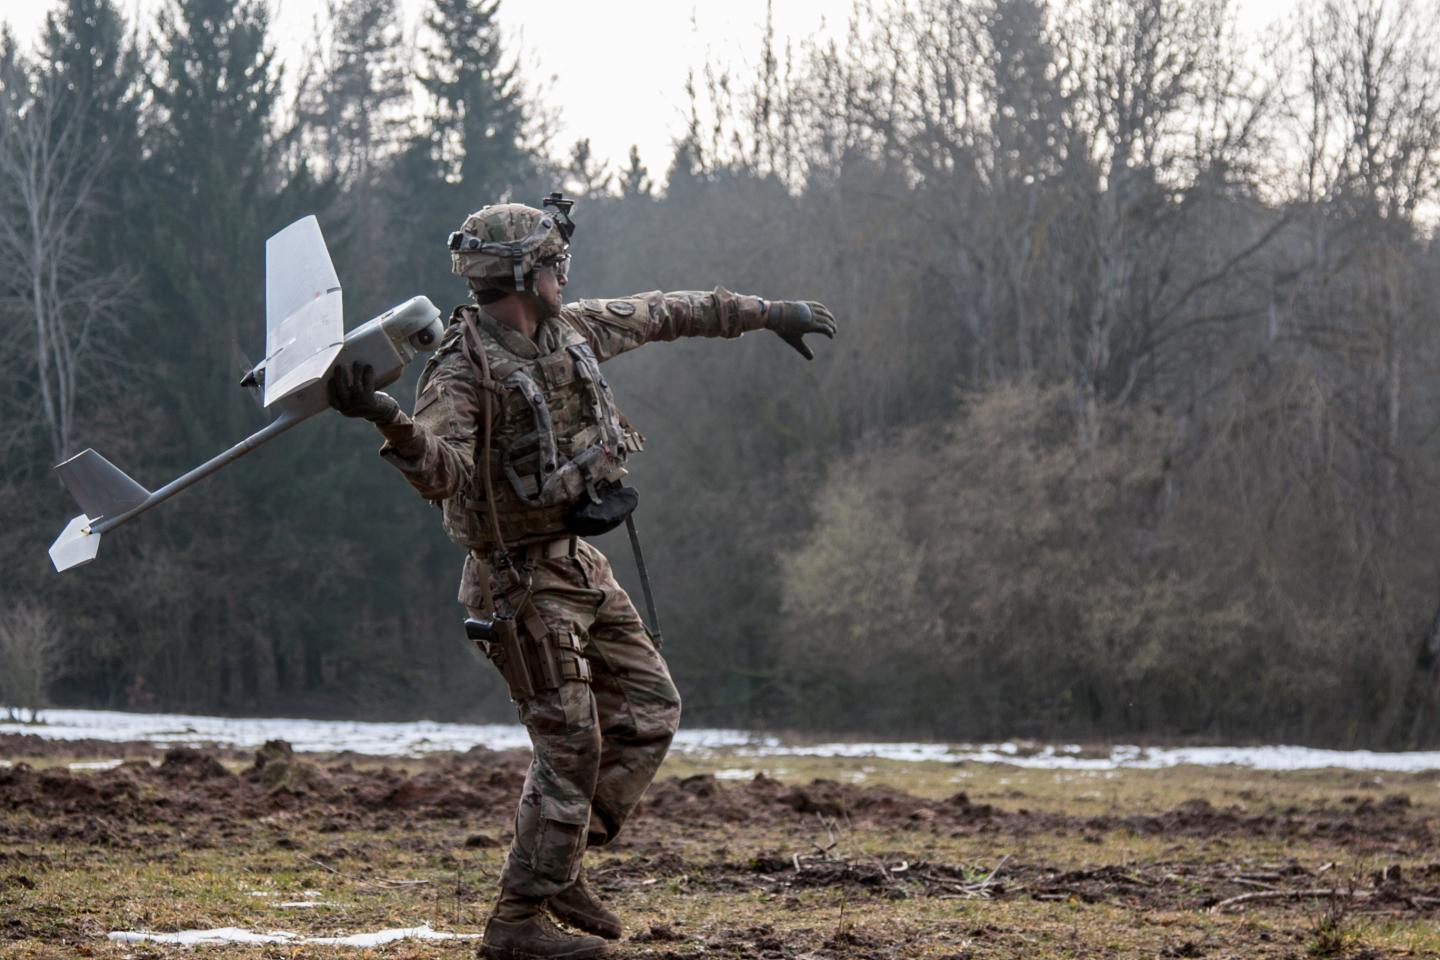 Army Spc. William Ritter prepares to launch the RQ-11 Raven, a small unmanned aerial system into the air during a 2018 training event. Credit. U.S. Army photo by Spc. Dustin D. Biven / 22nd Mobile Public Affairs Detachment